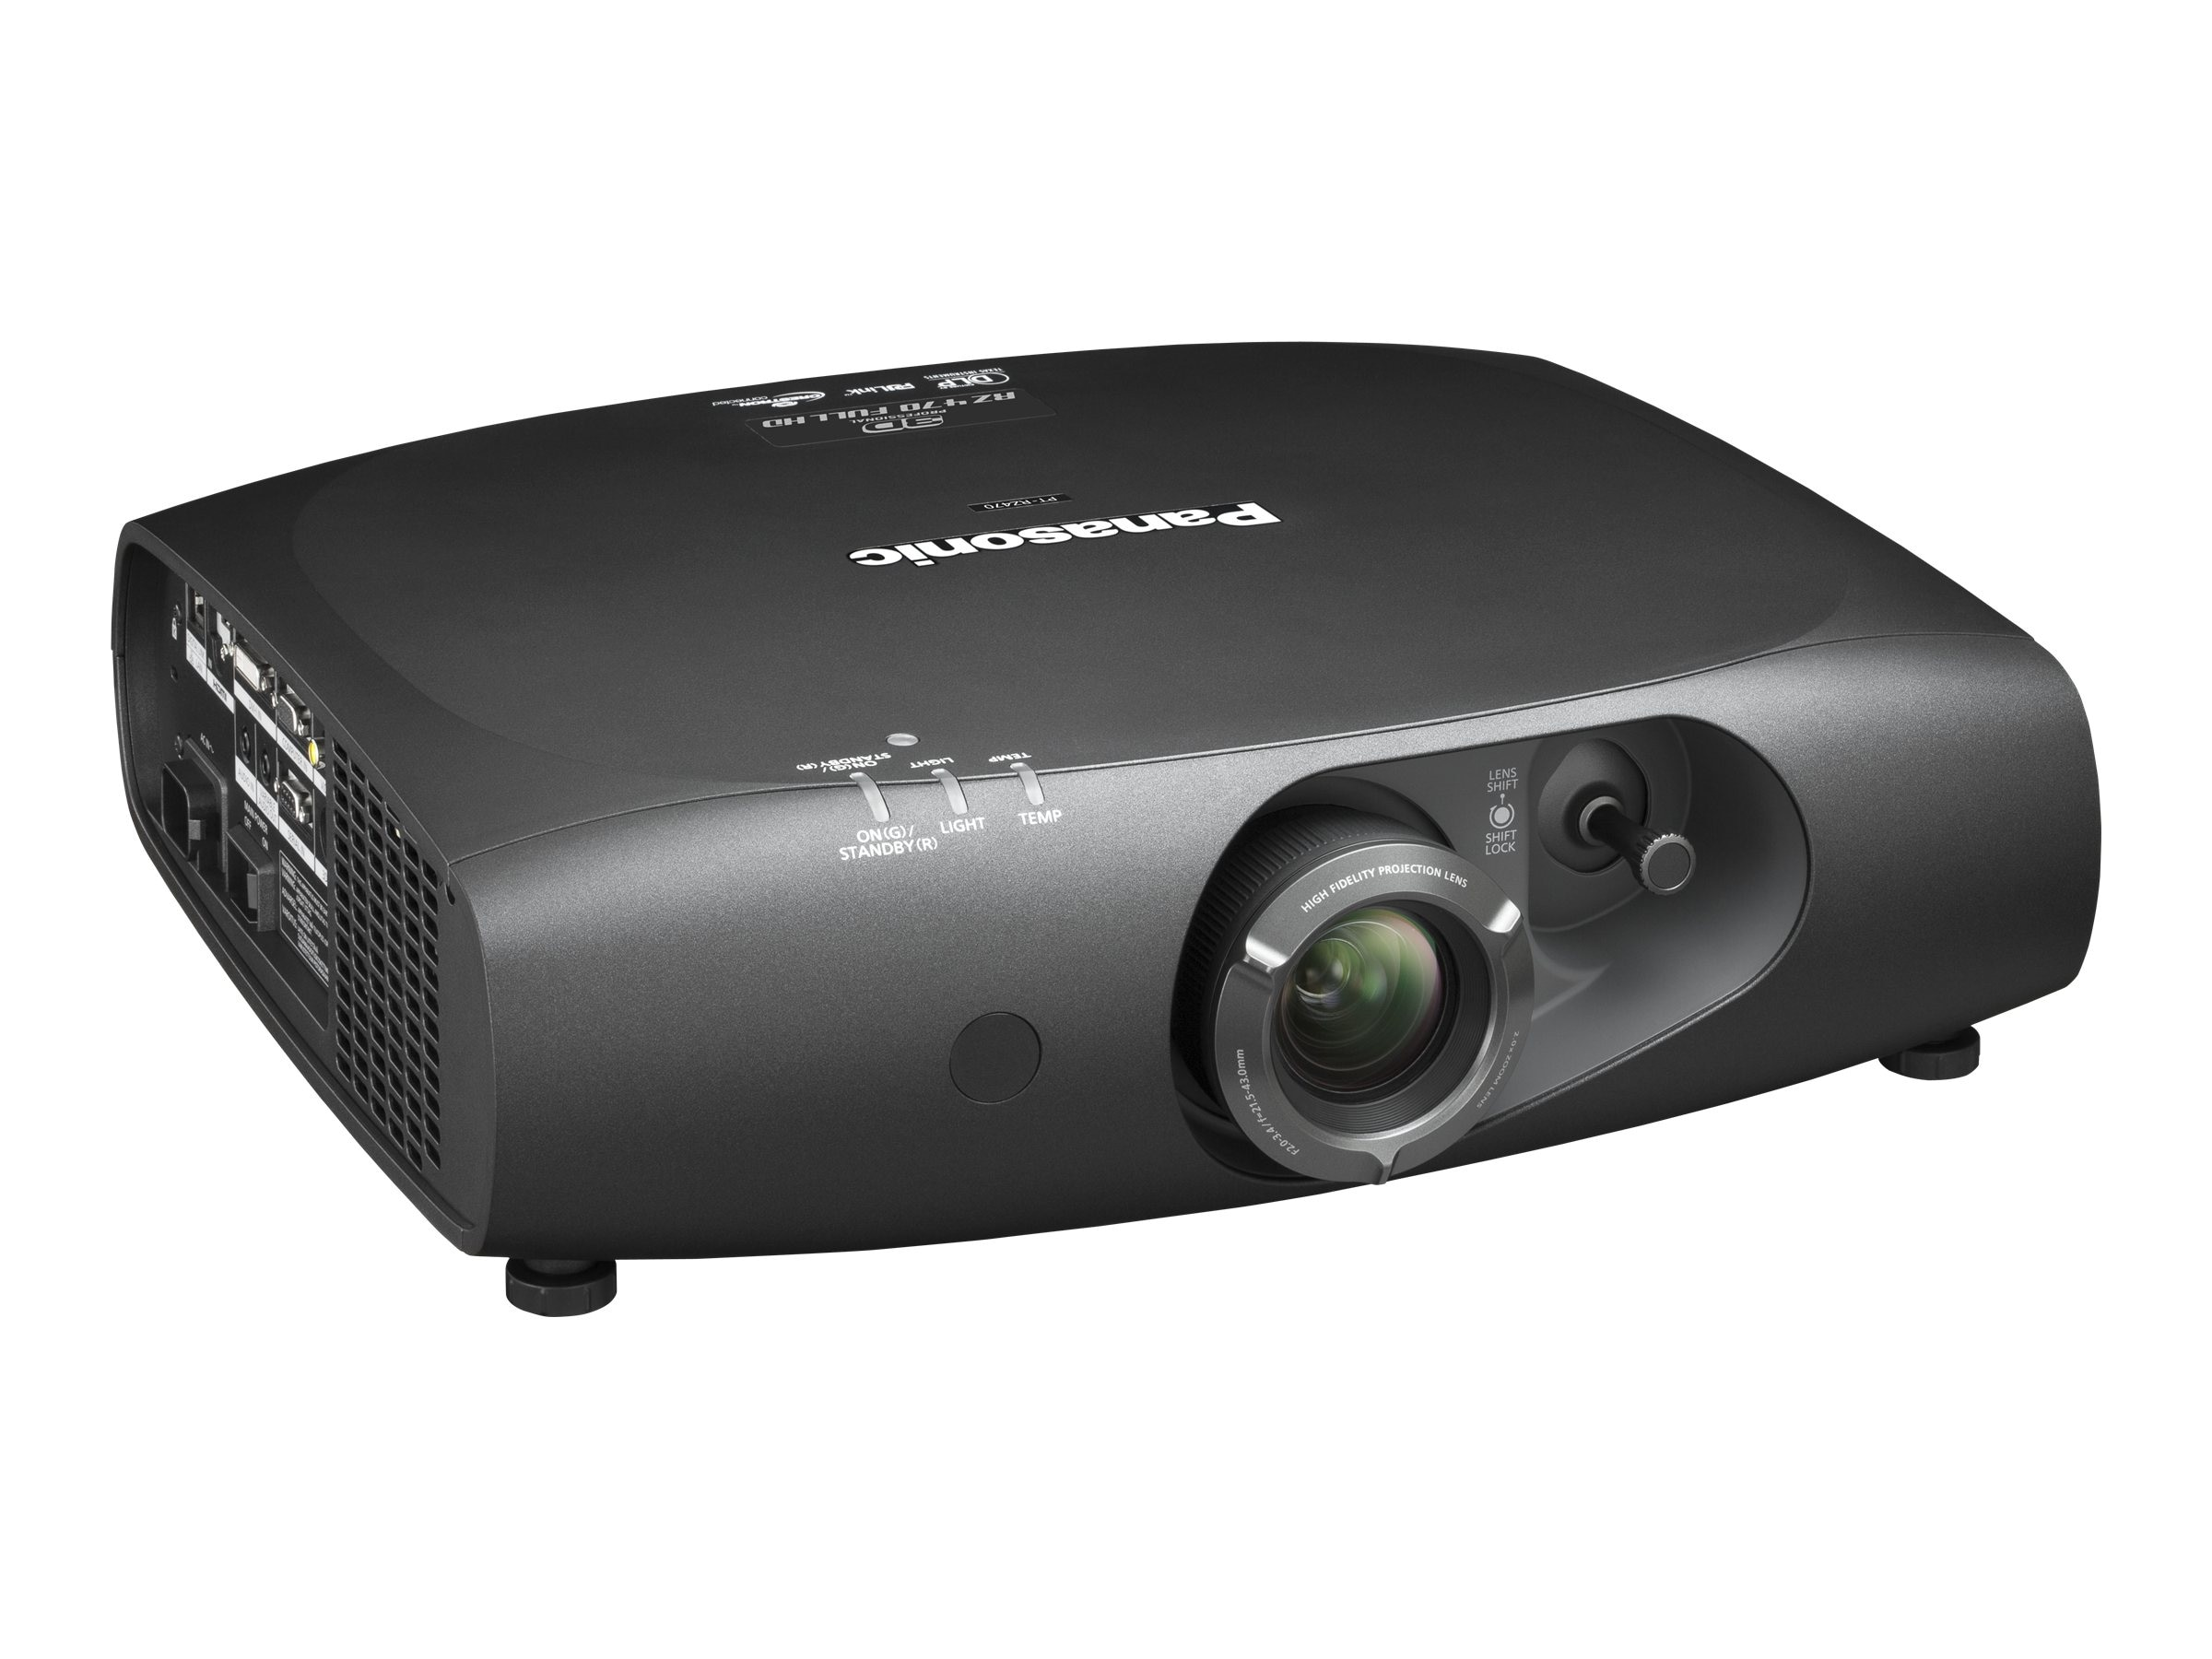 Panasonic PTRZ470UK Image 7